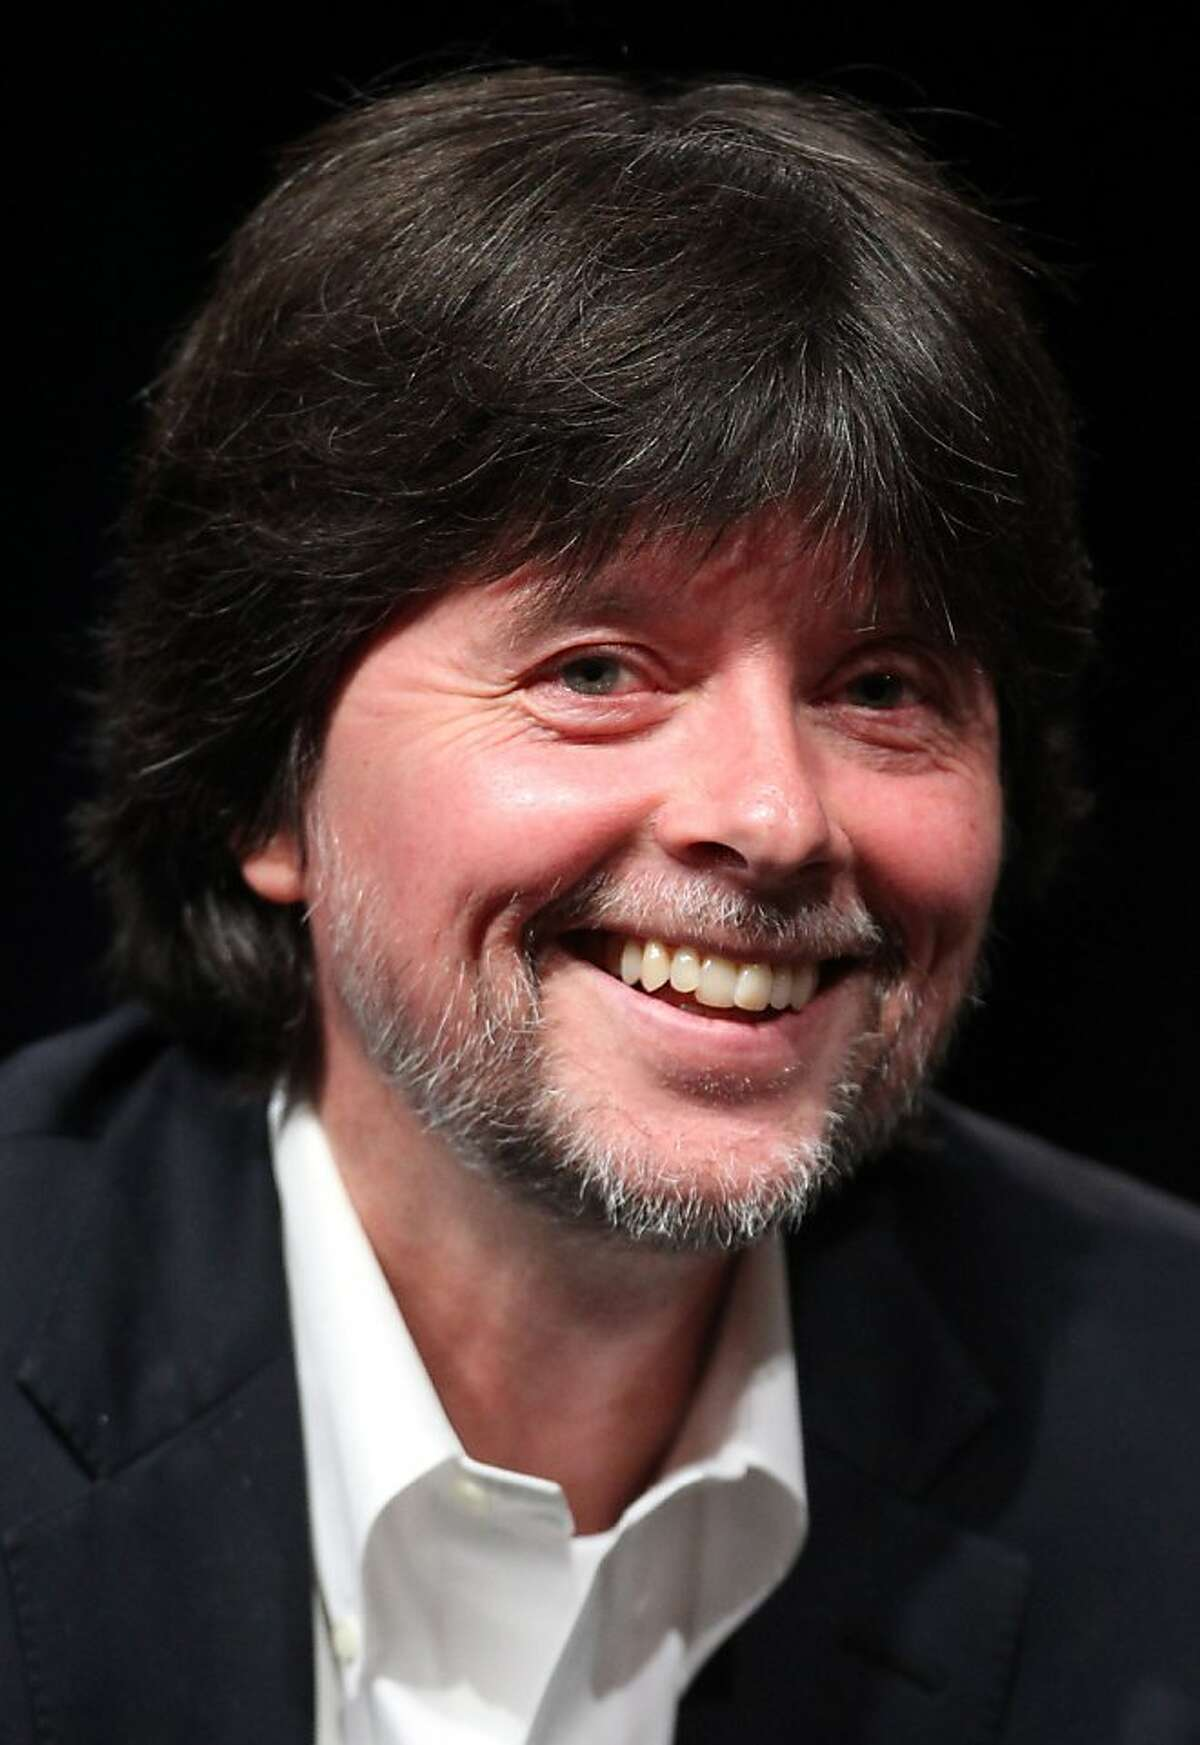 BEVERLY HILLS, CA - JULY 31: Filmmaker Ken Burns speaks during the 'Prohibition' panel during the PBS portion of the 2011 Summer TCA Tour held at the Beverly Hilton Hotel on July 31, 2011 in Beverly Hills, California.